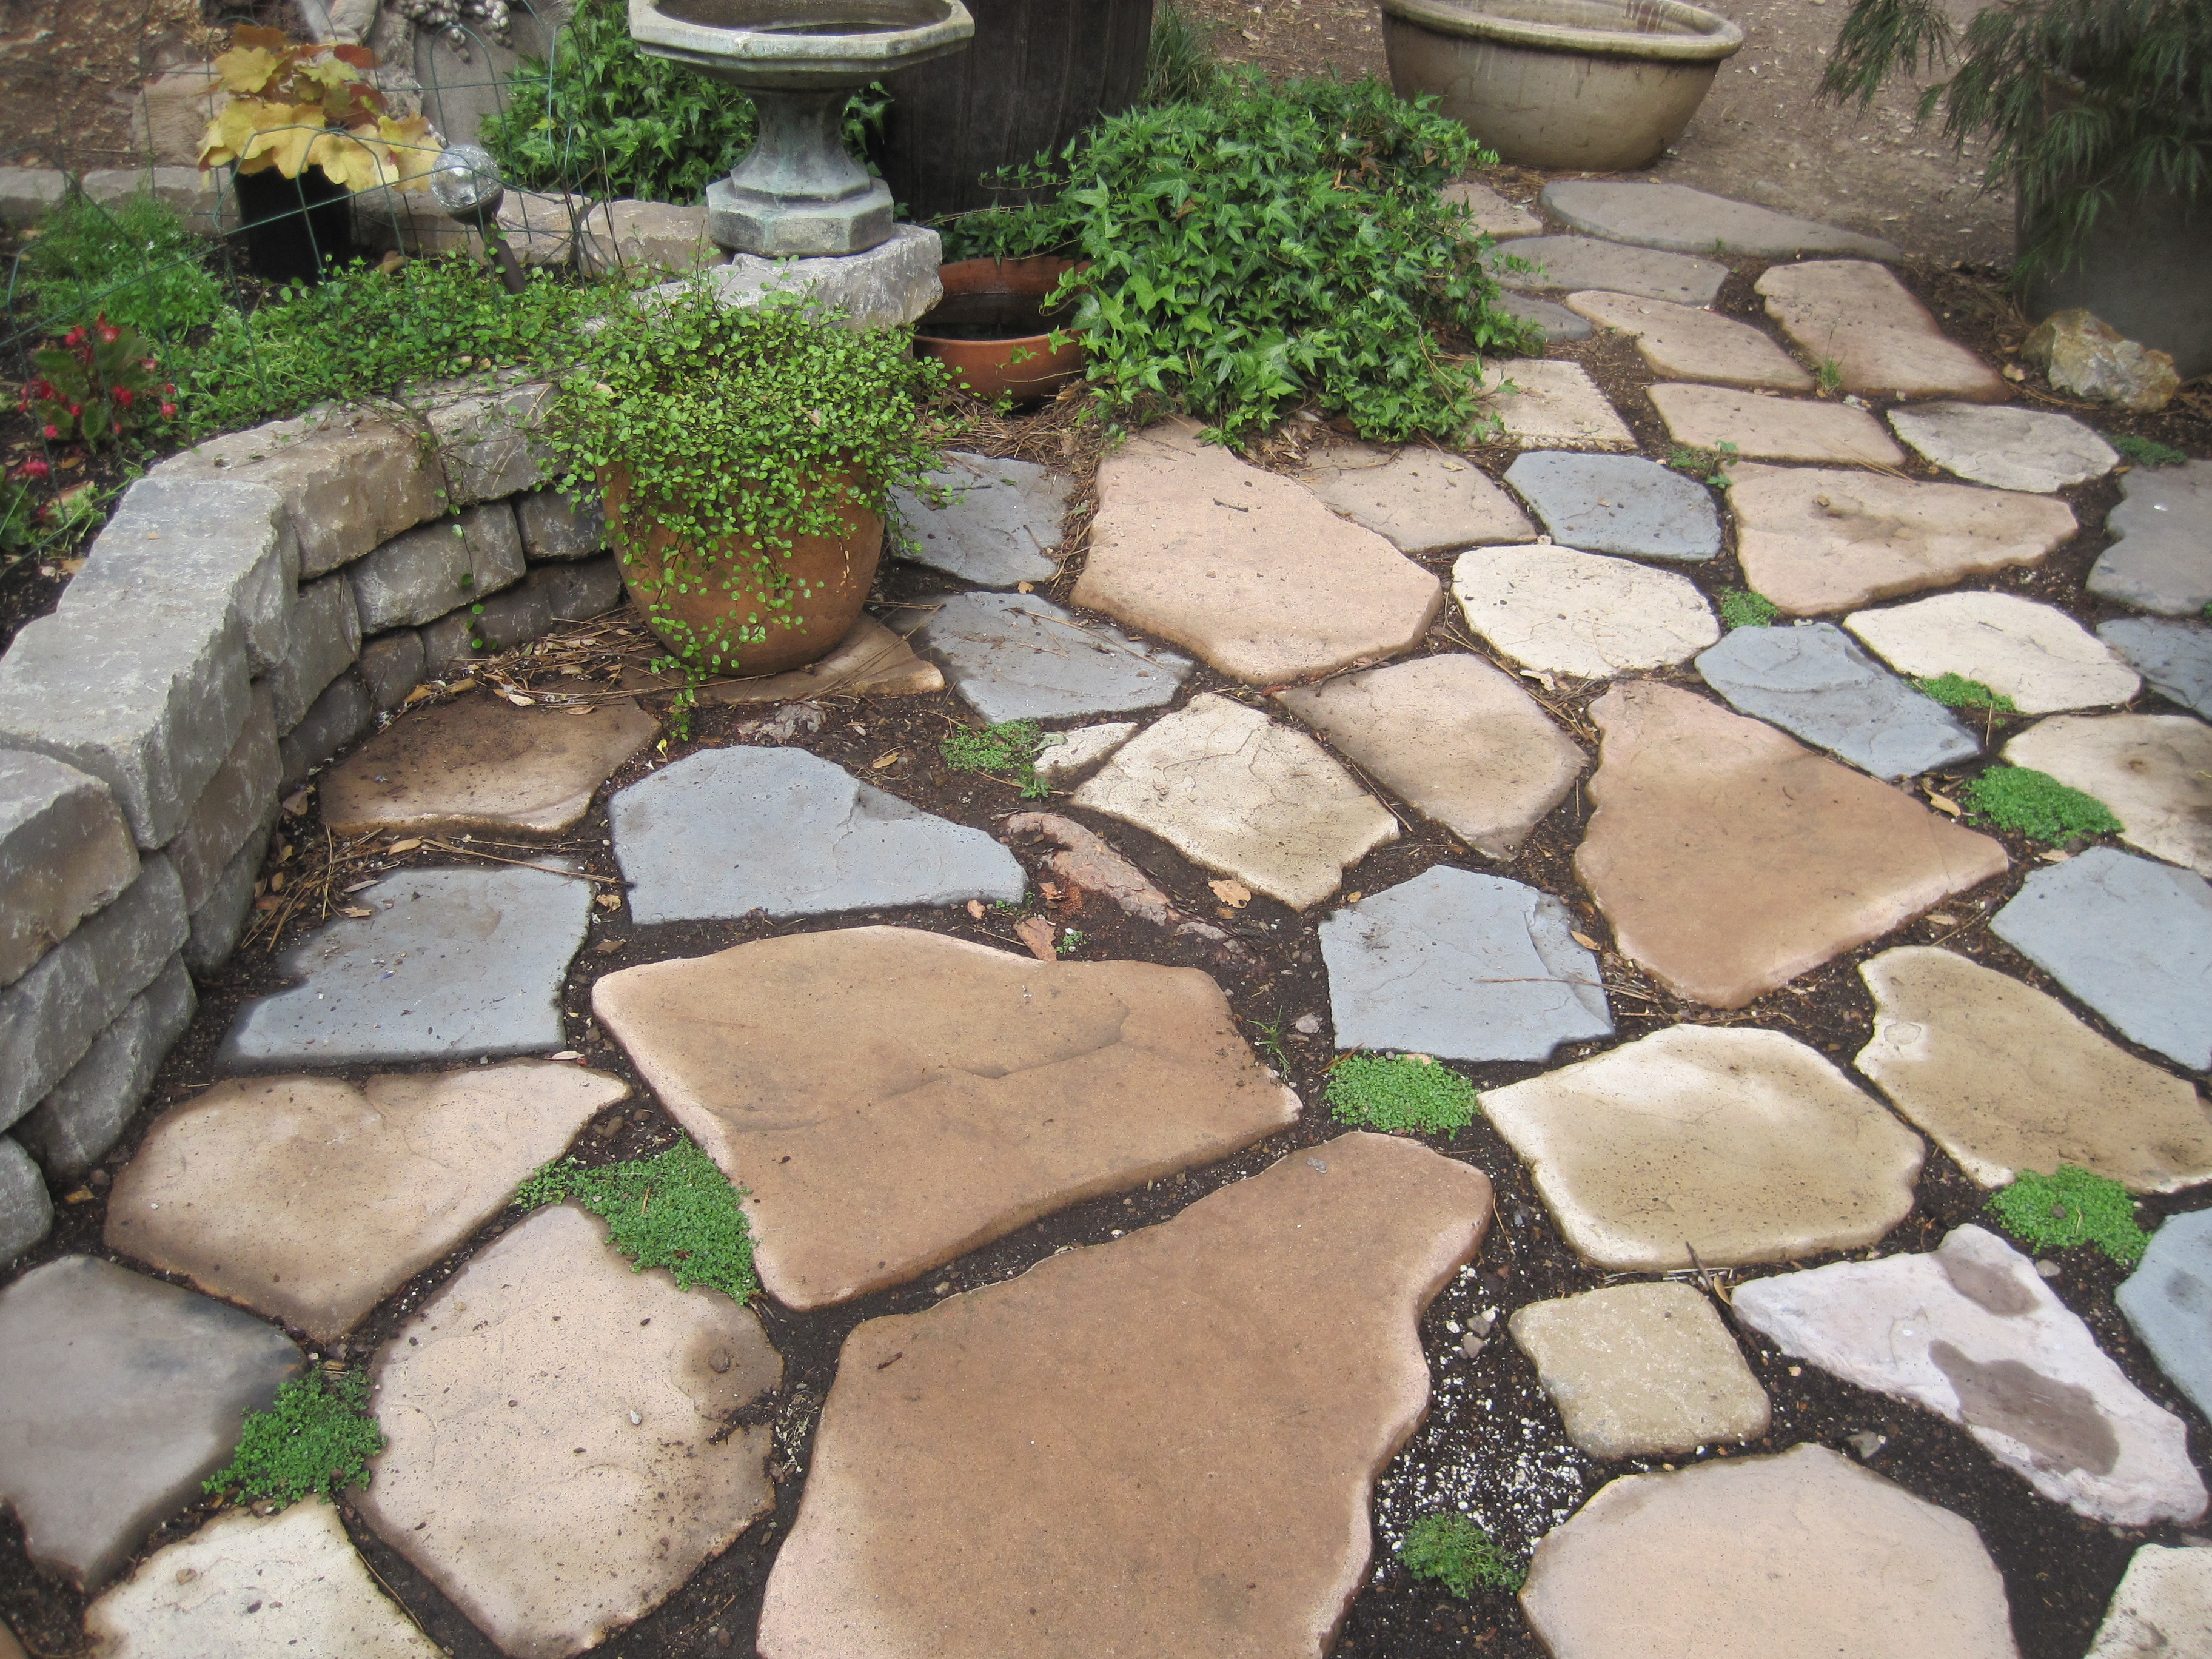 How to plant ground cover between pavers -  Ground Cover To Grow Between My Paver Stones Img_9621